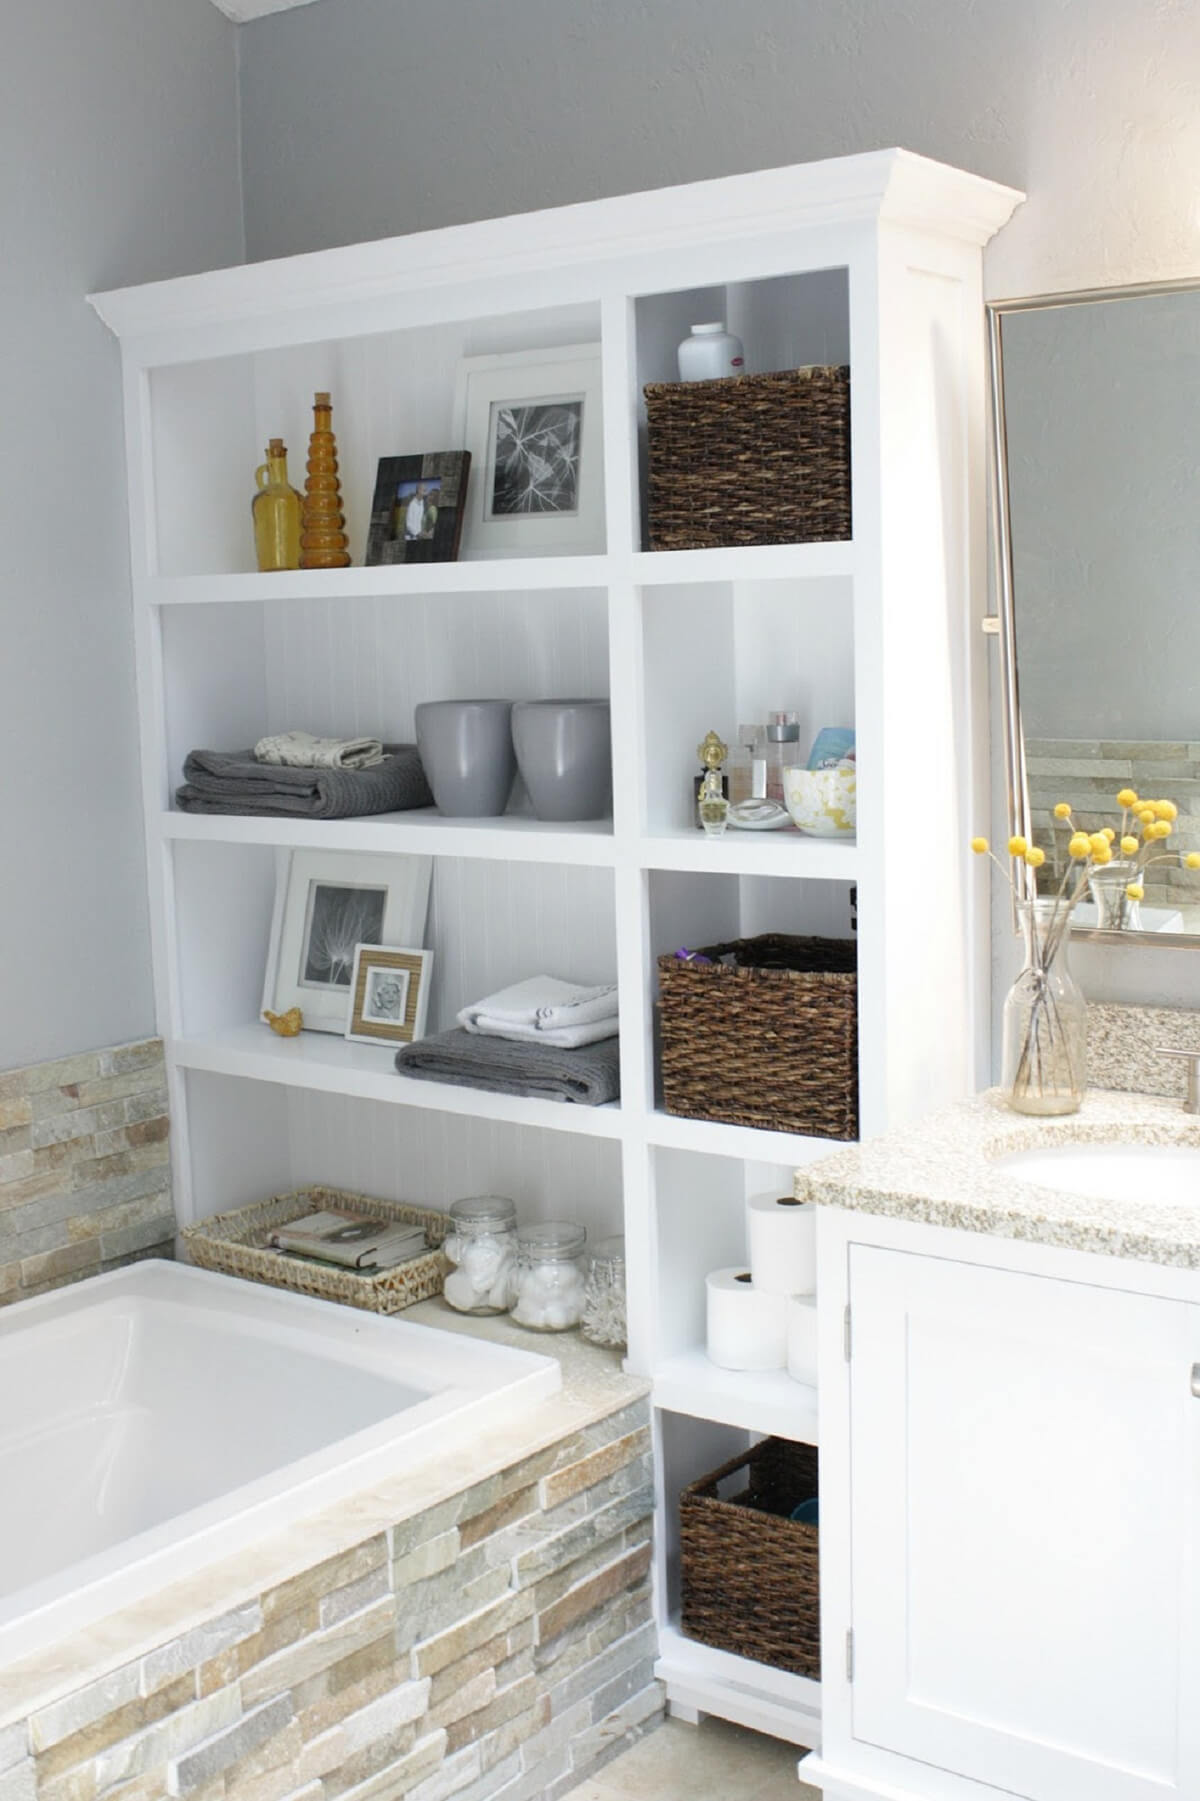 Small bathroom storage ideas - 28 Re Purpose That Old Bookshelf